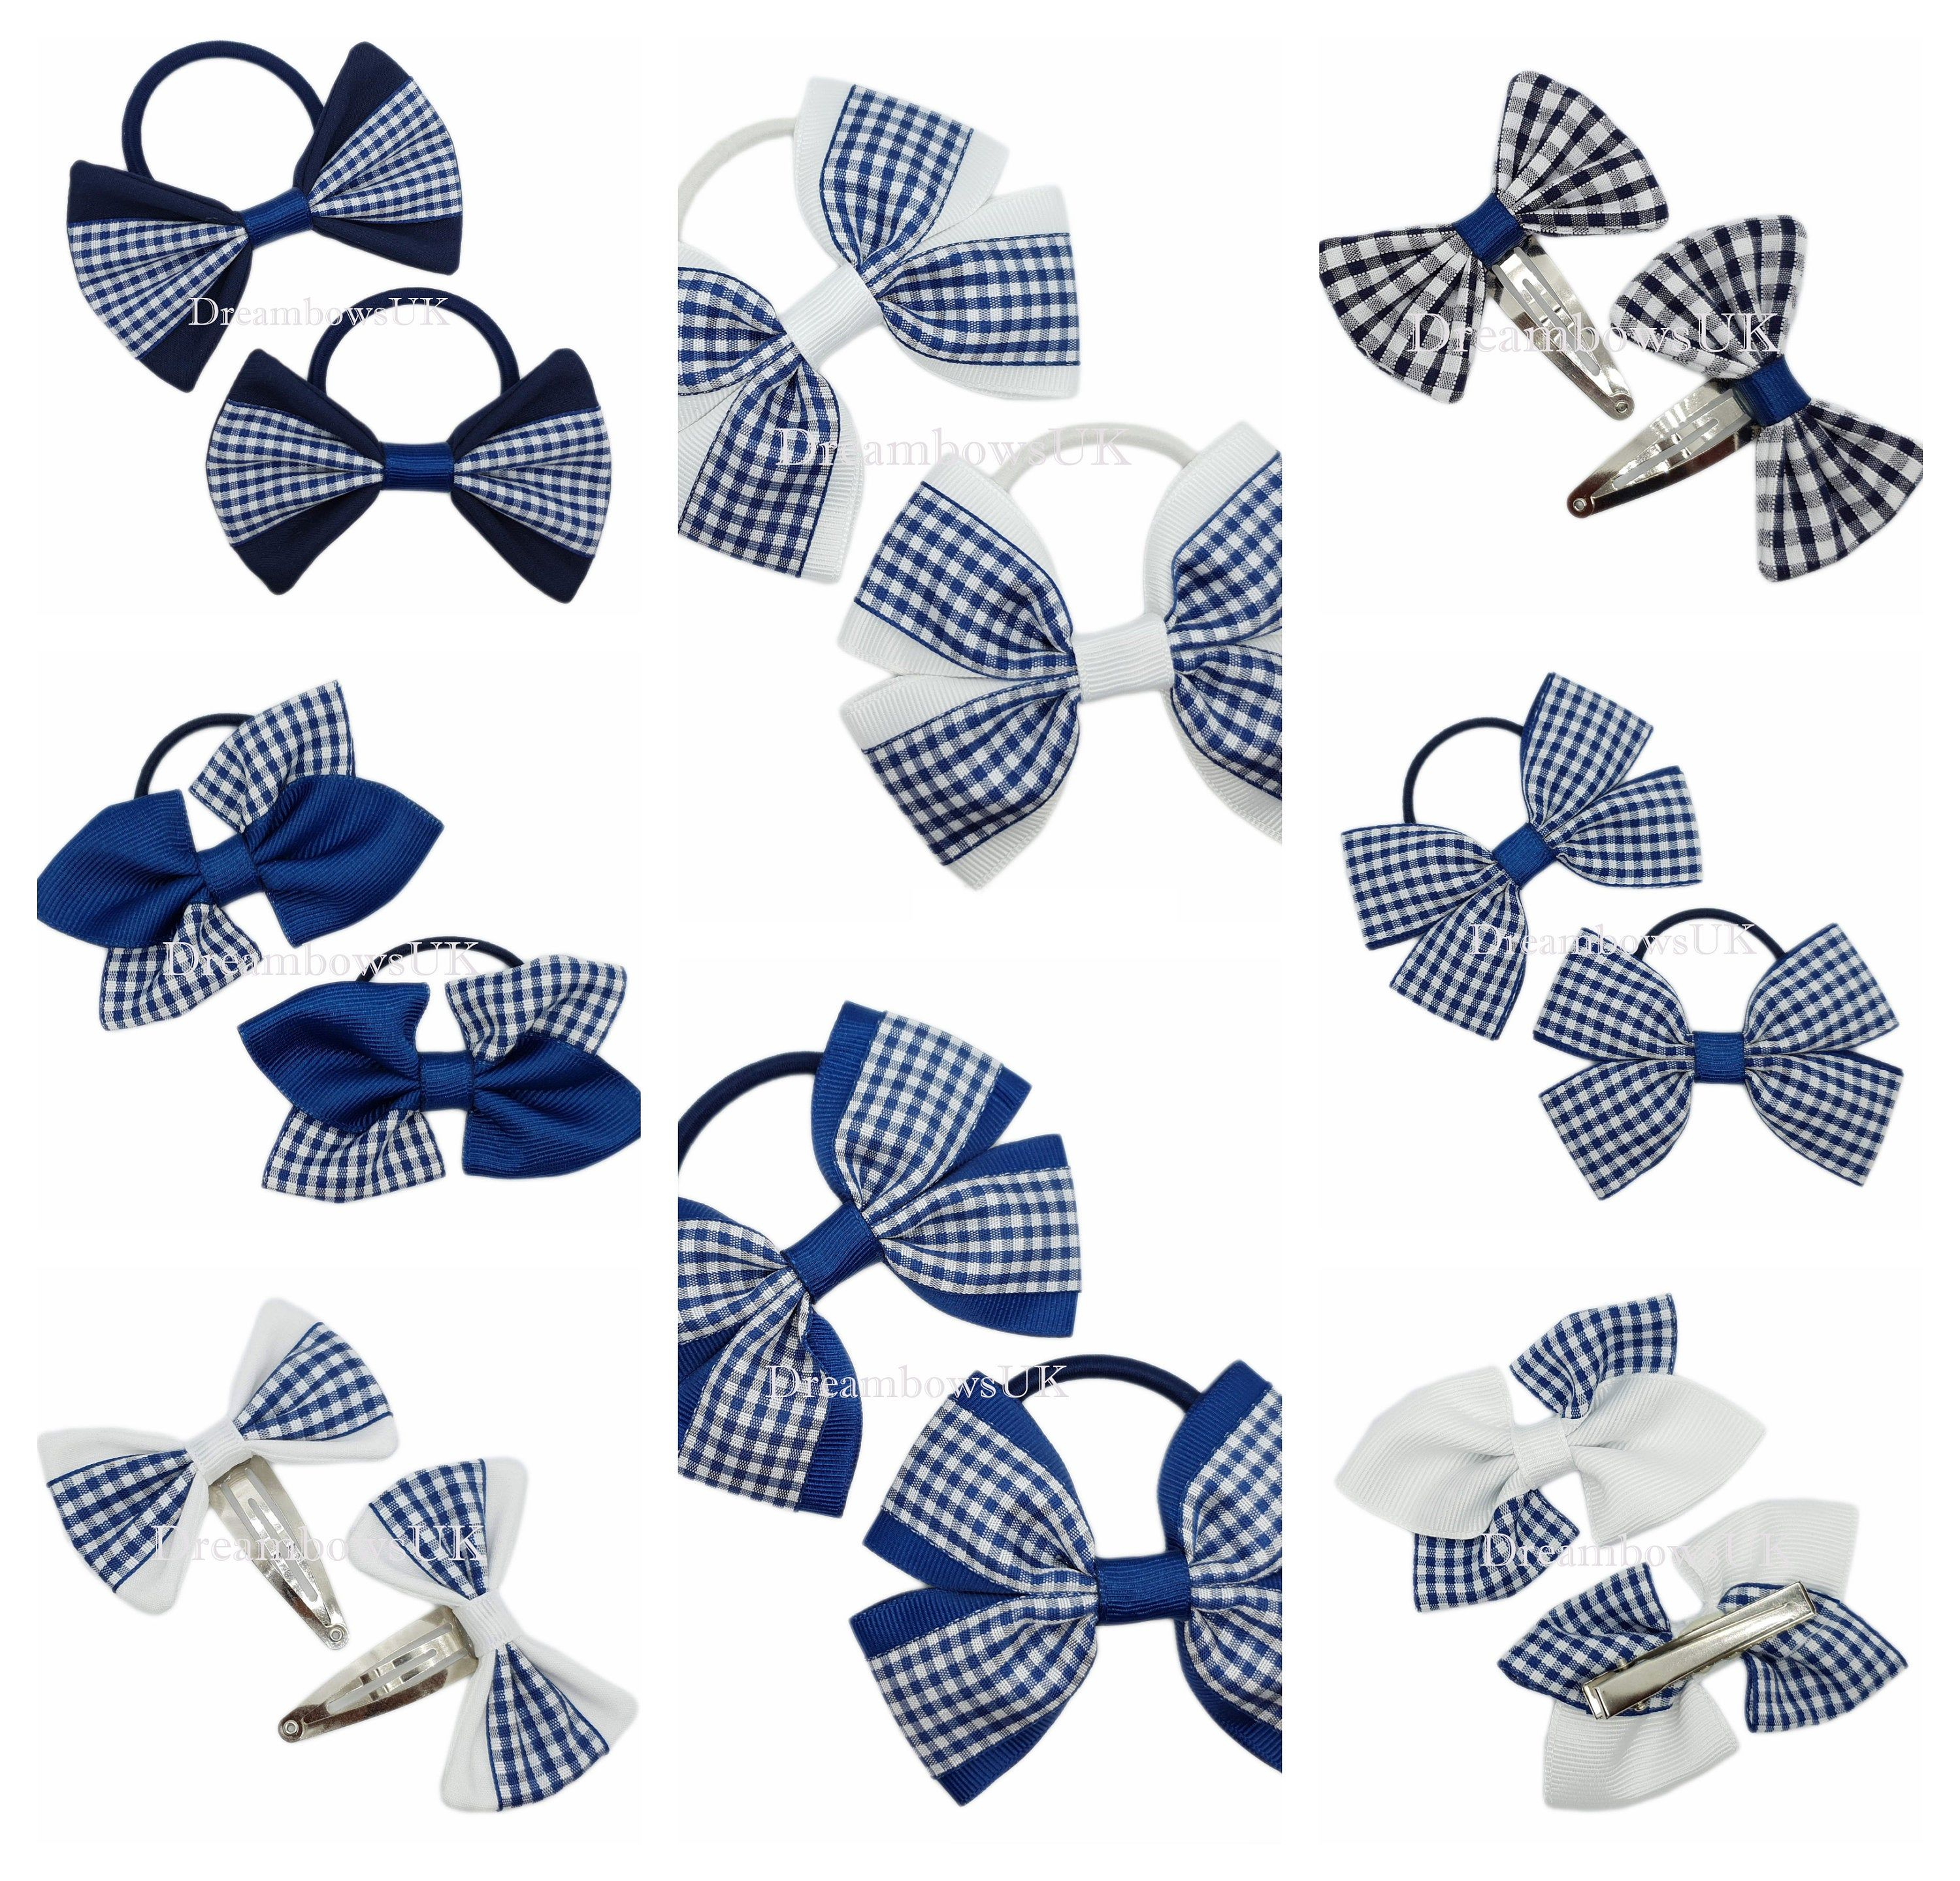 Thick or thin bobbles Black and blue tartan fabric hair accessories Tartan bows Alligator or snap clips